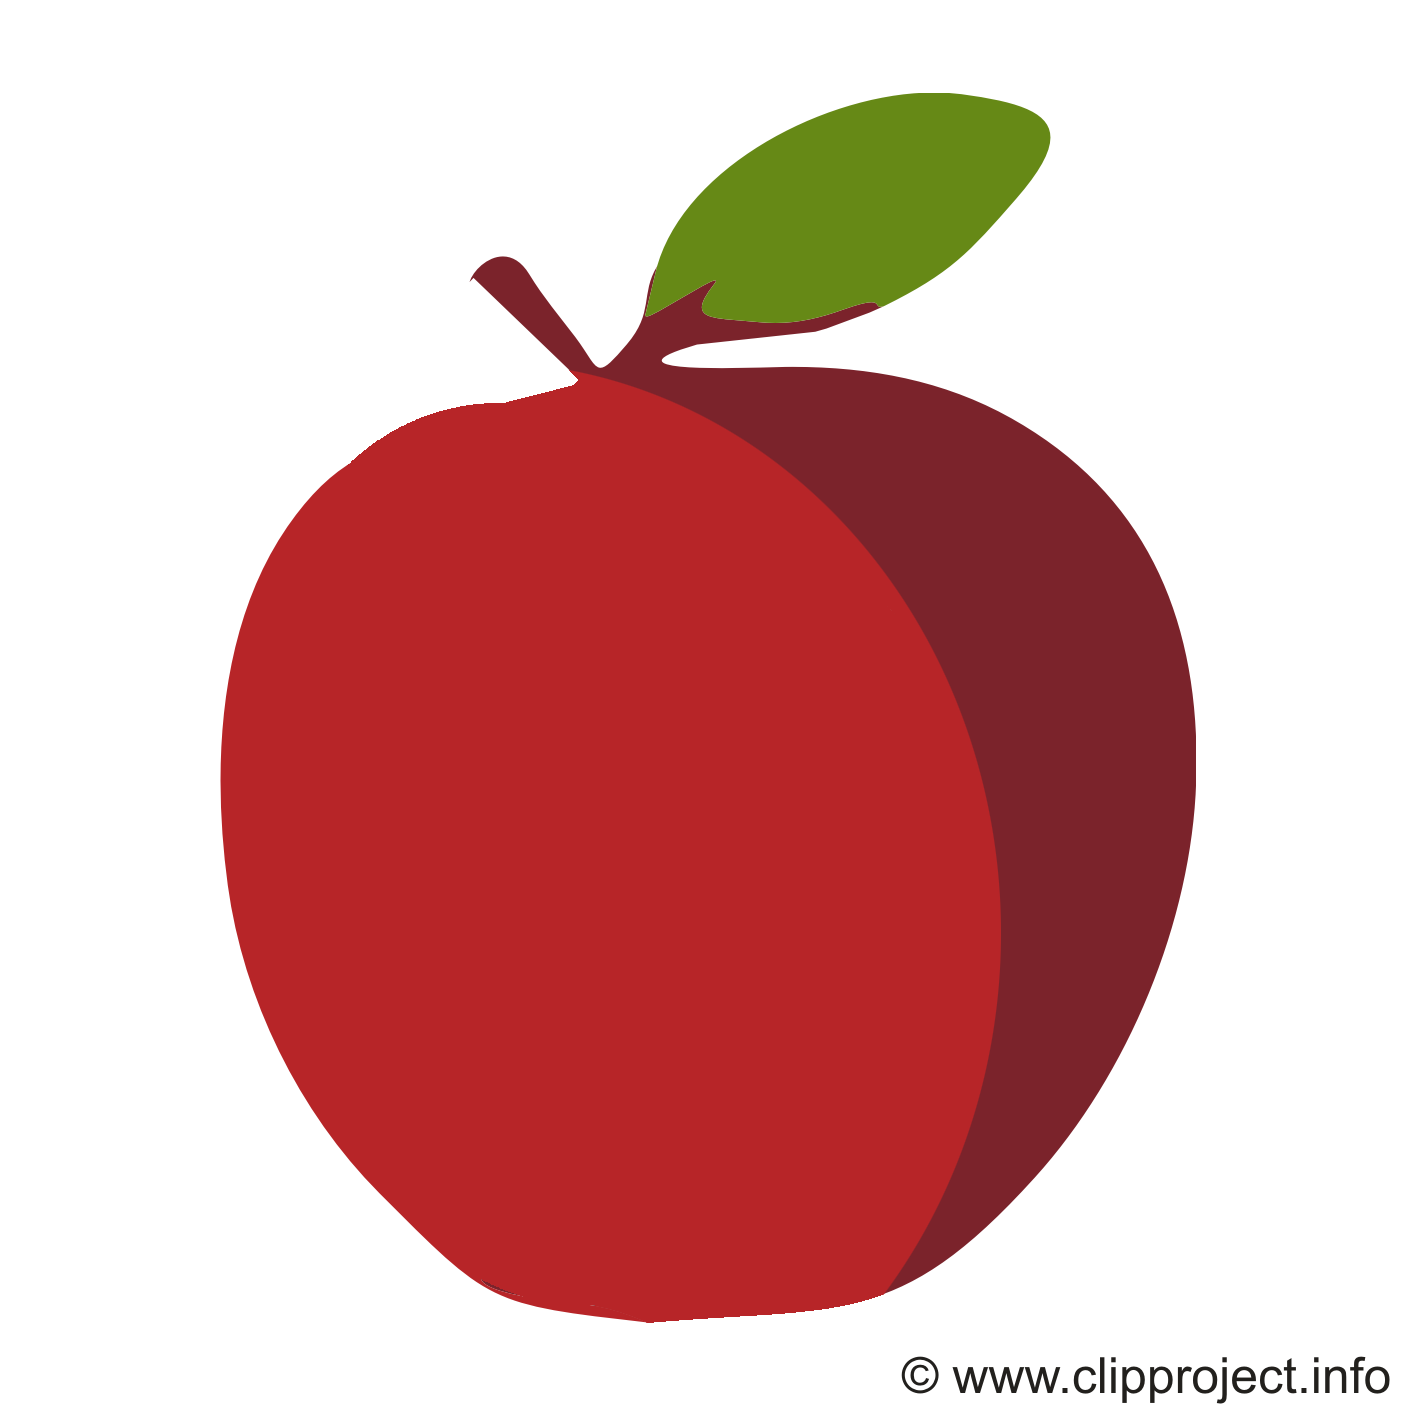 Cliparts pomme gratuis - Fruits images